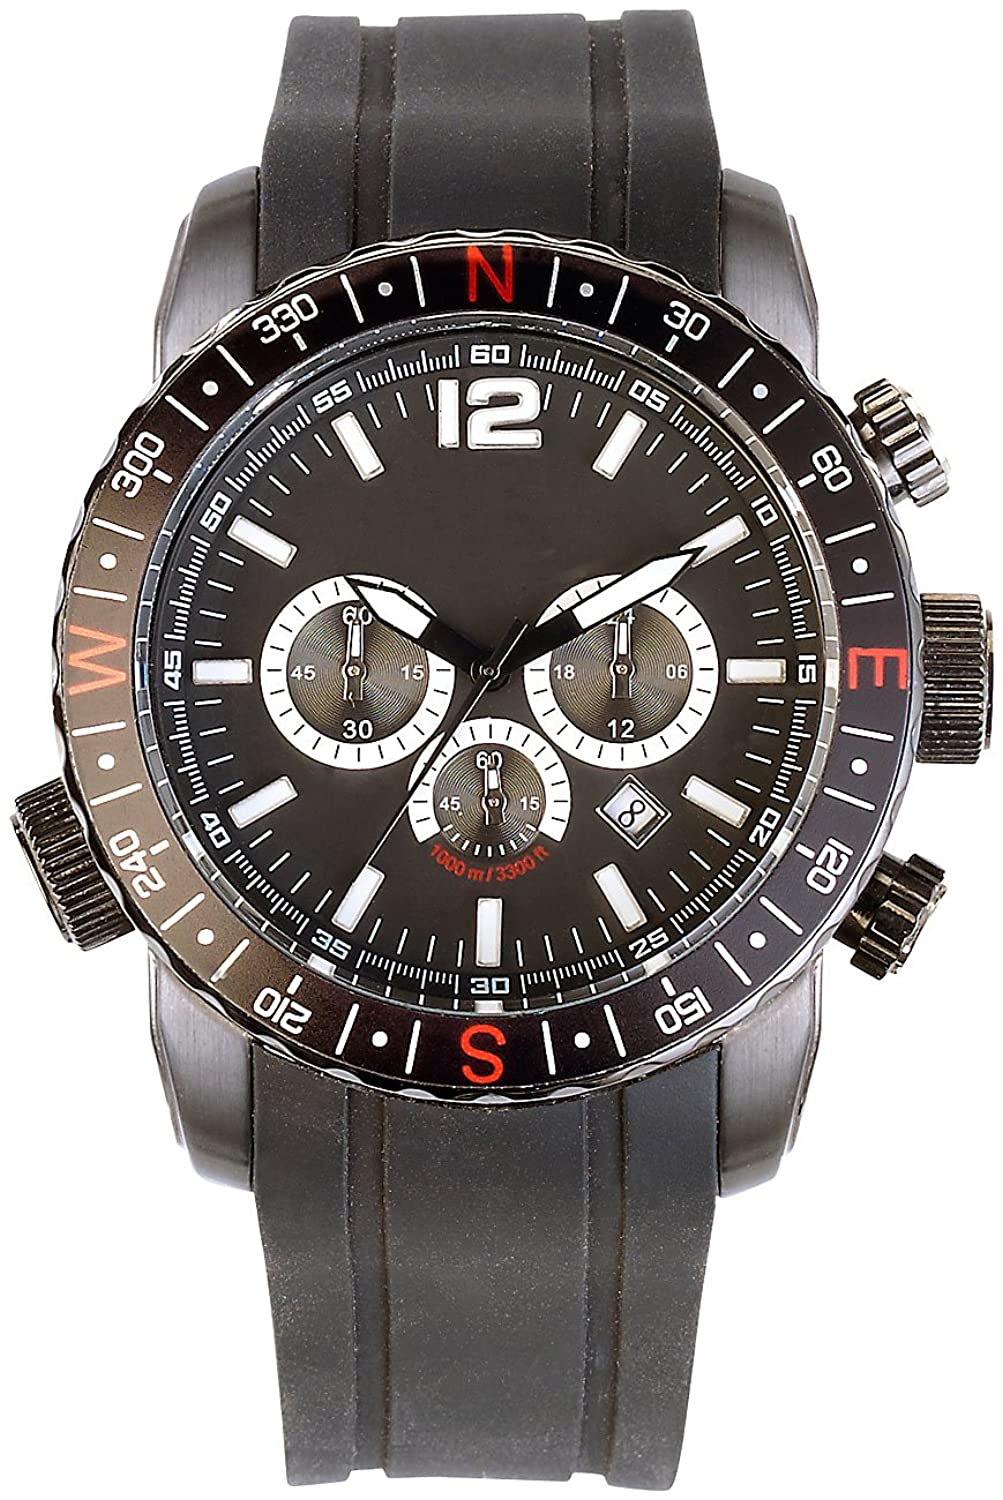 Semptec Urban Survival Technology Taucheruhr mit Chronograph bis 100 atm wasserdicht - schwarz